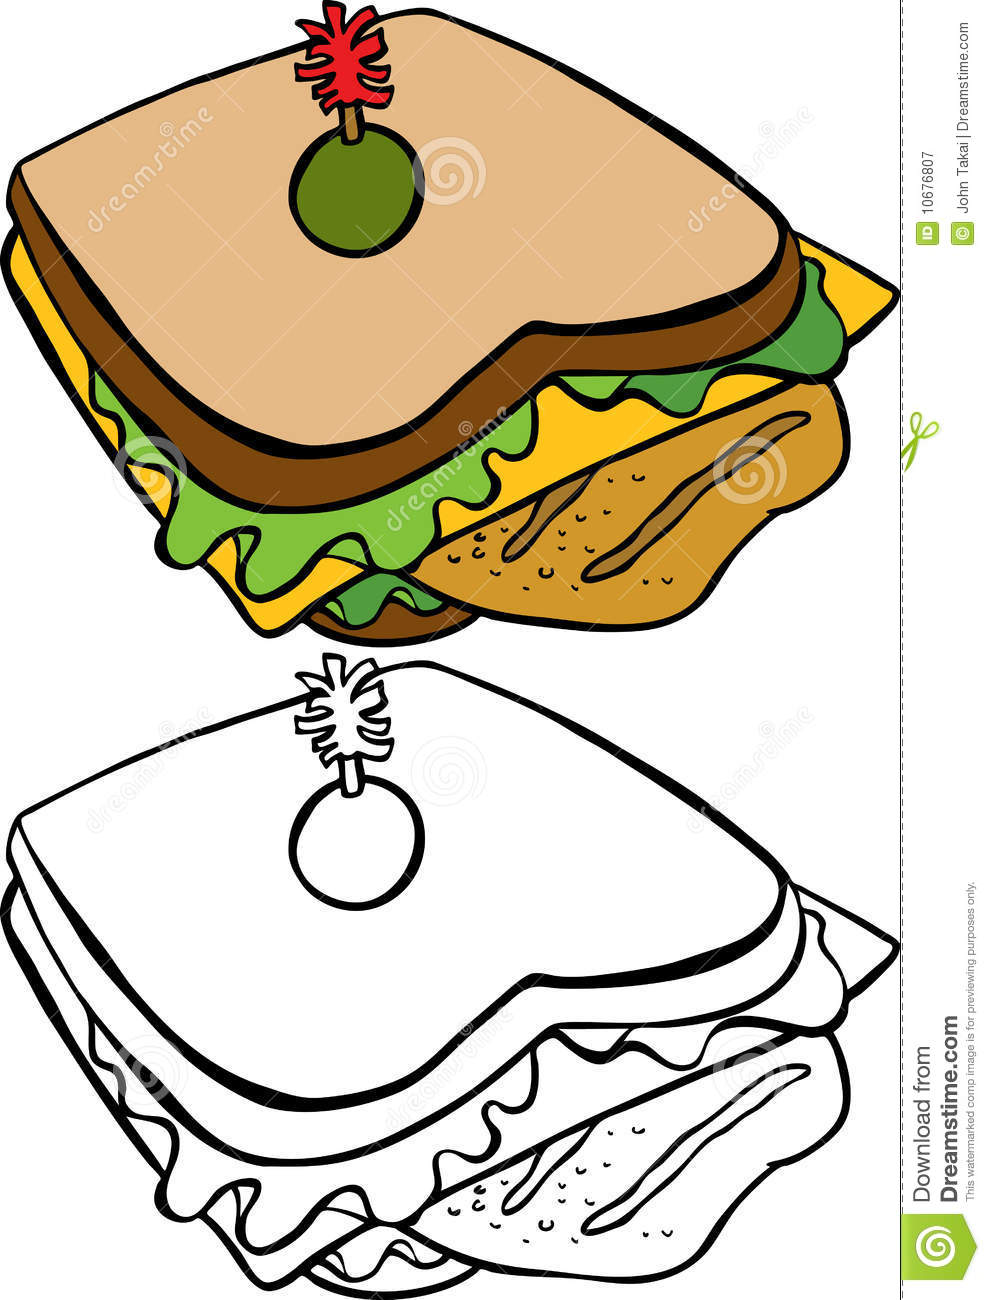 Chicken Sandwich Royalty Free Stock Photography.